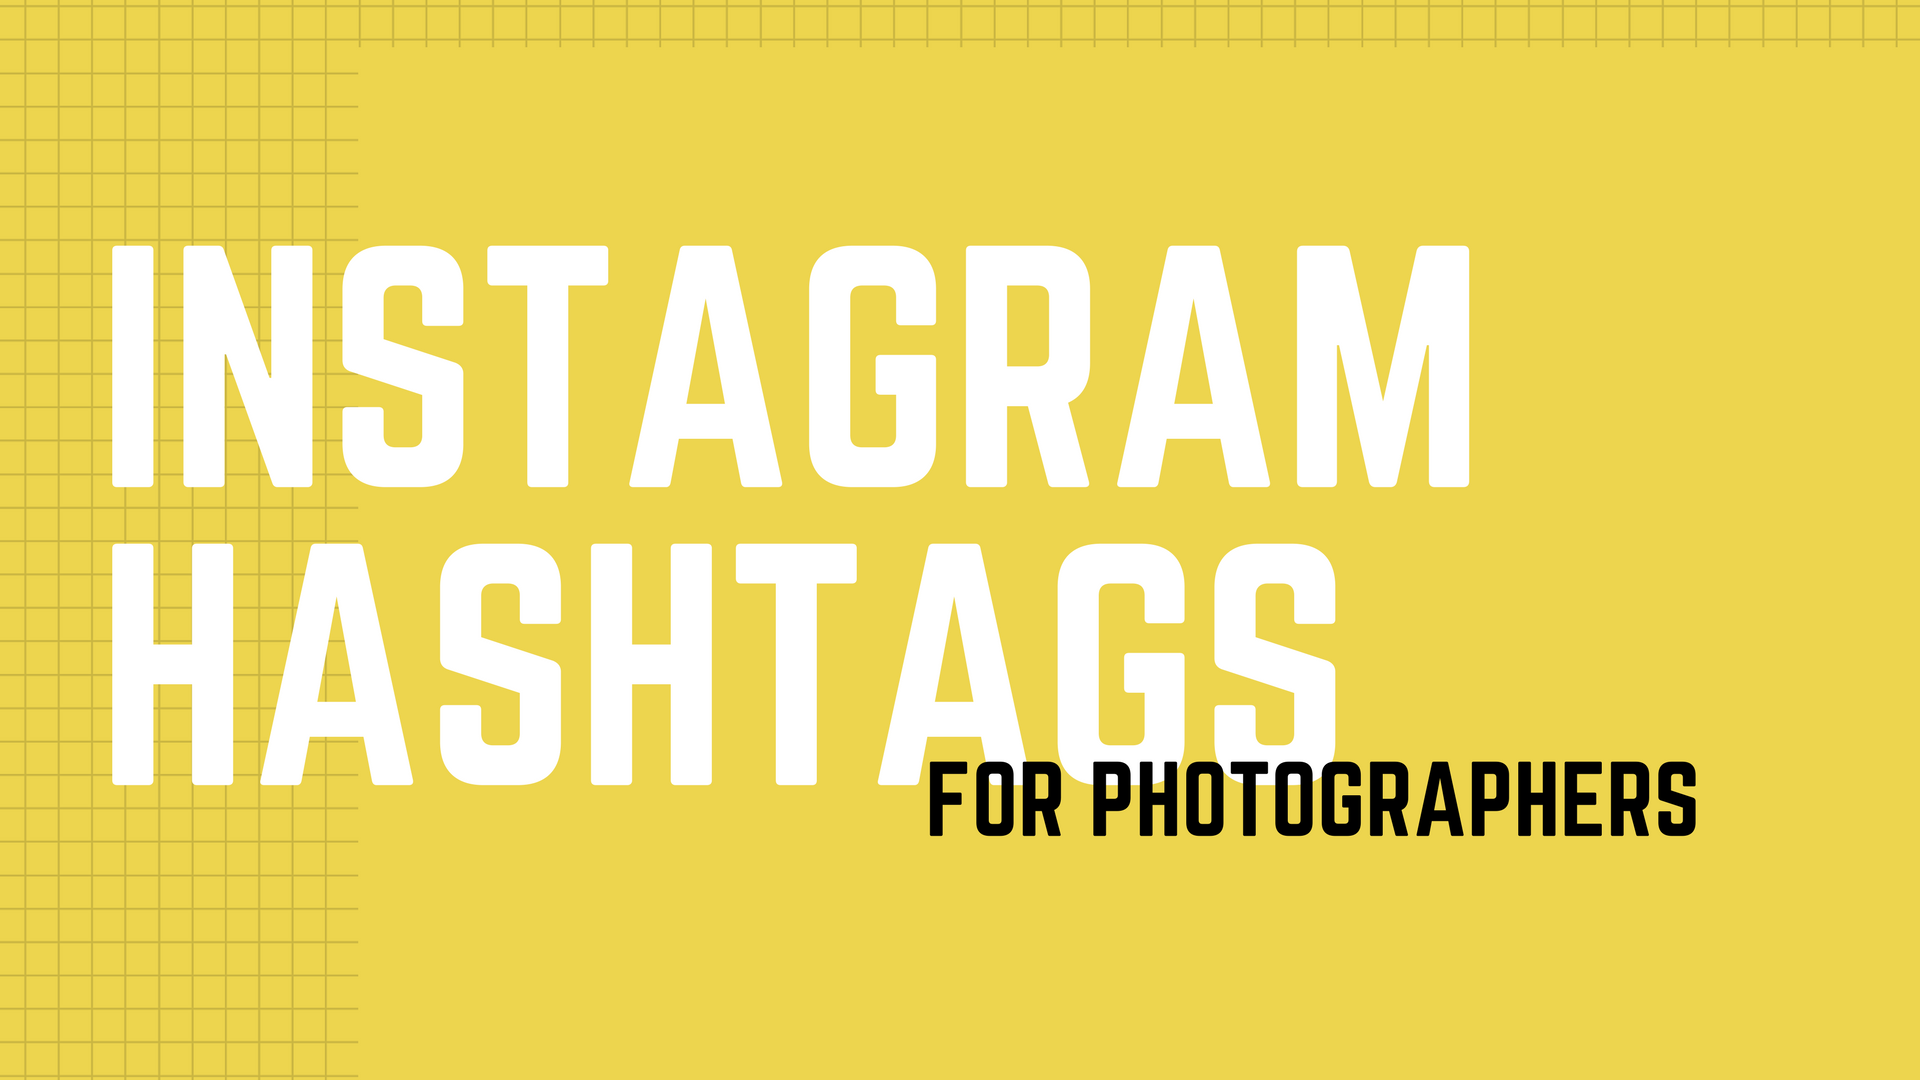 Copy and paste instagram hashtags for photographers